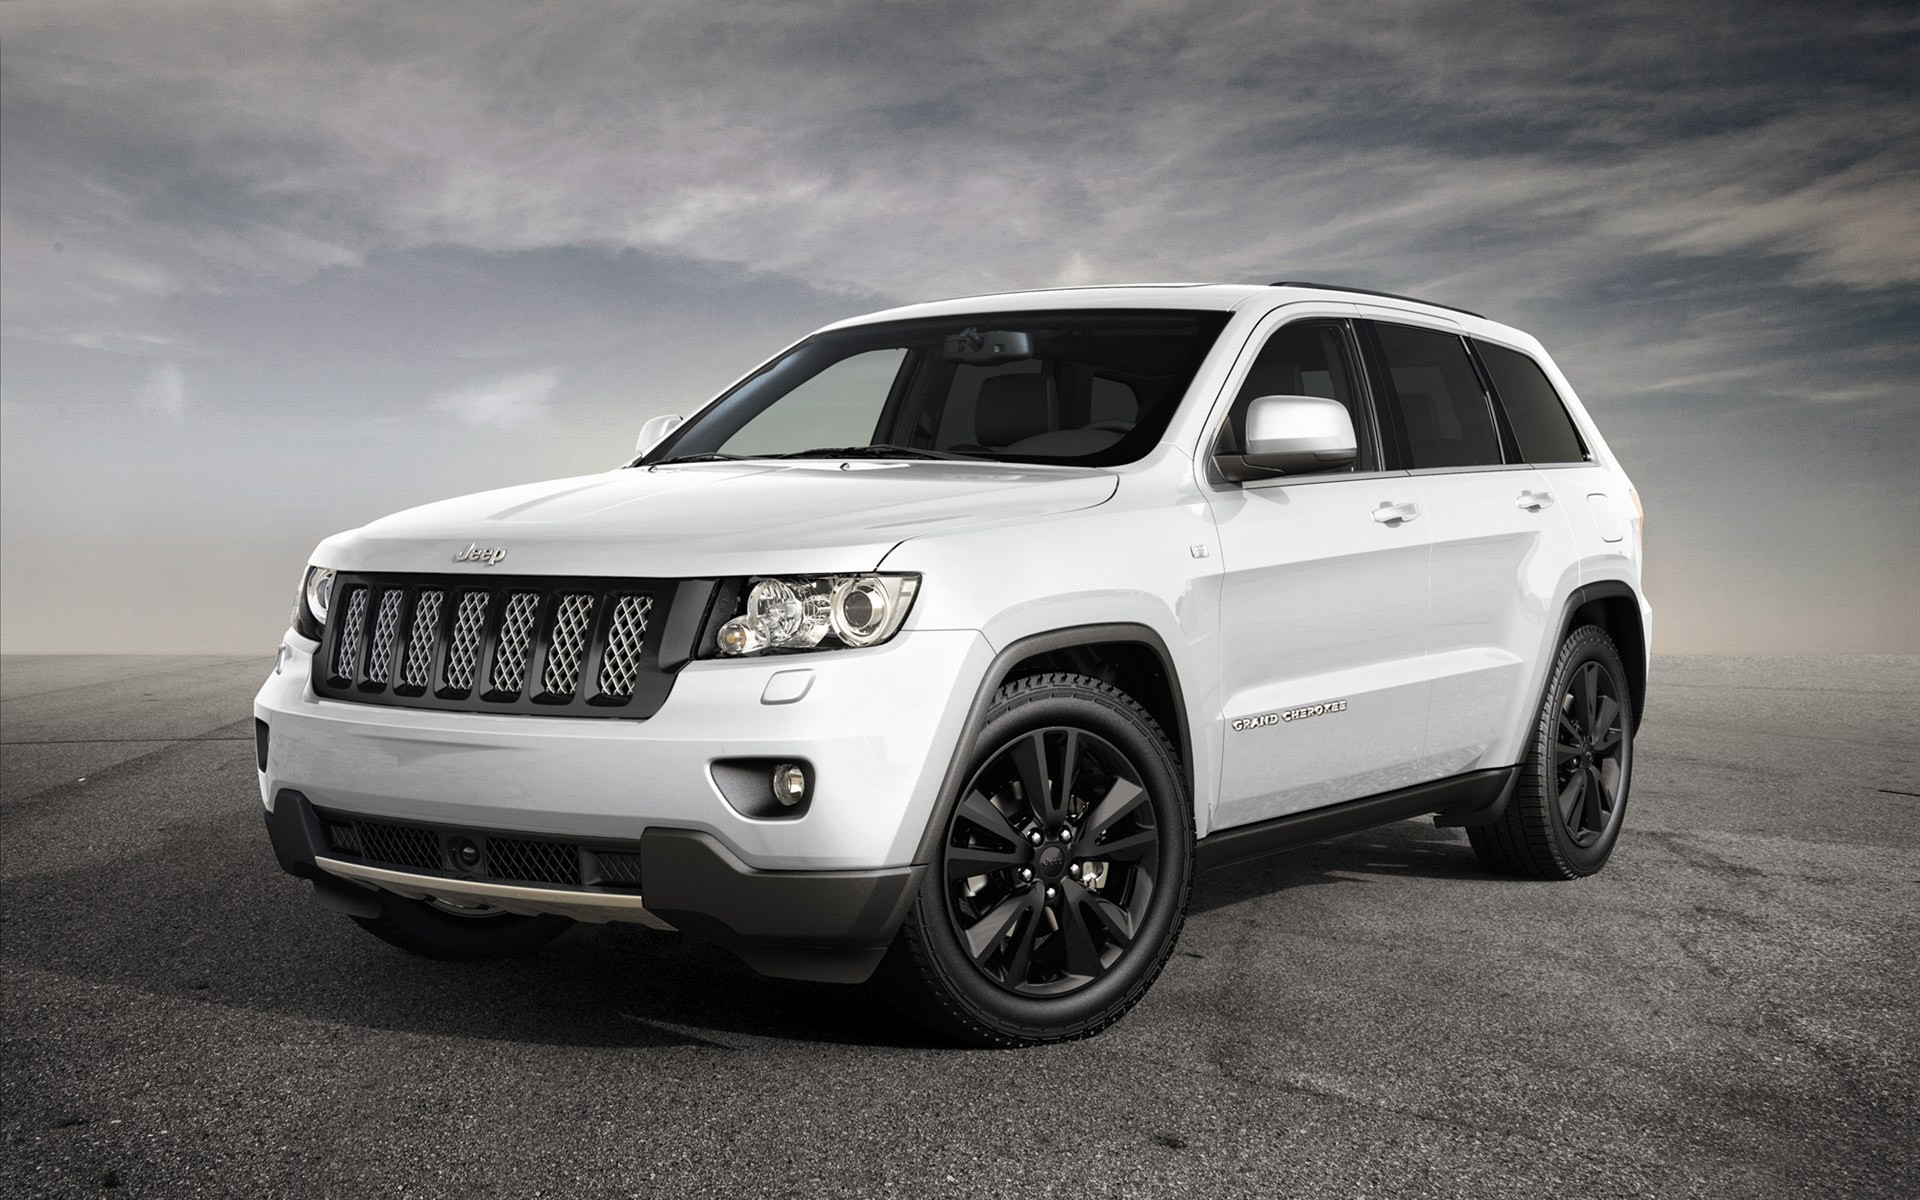 Jeep Car Images Hd: 2012 Jeep Grand Cherokee Wallpaper